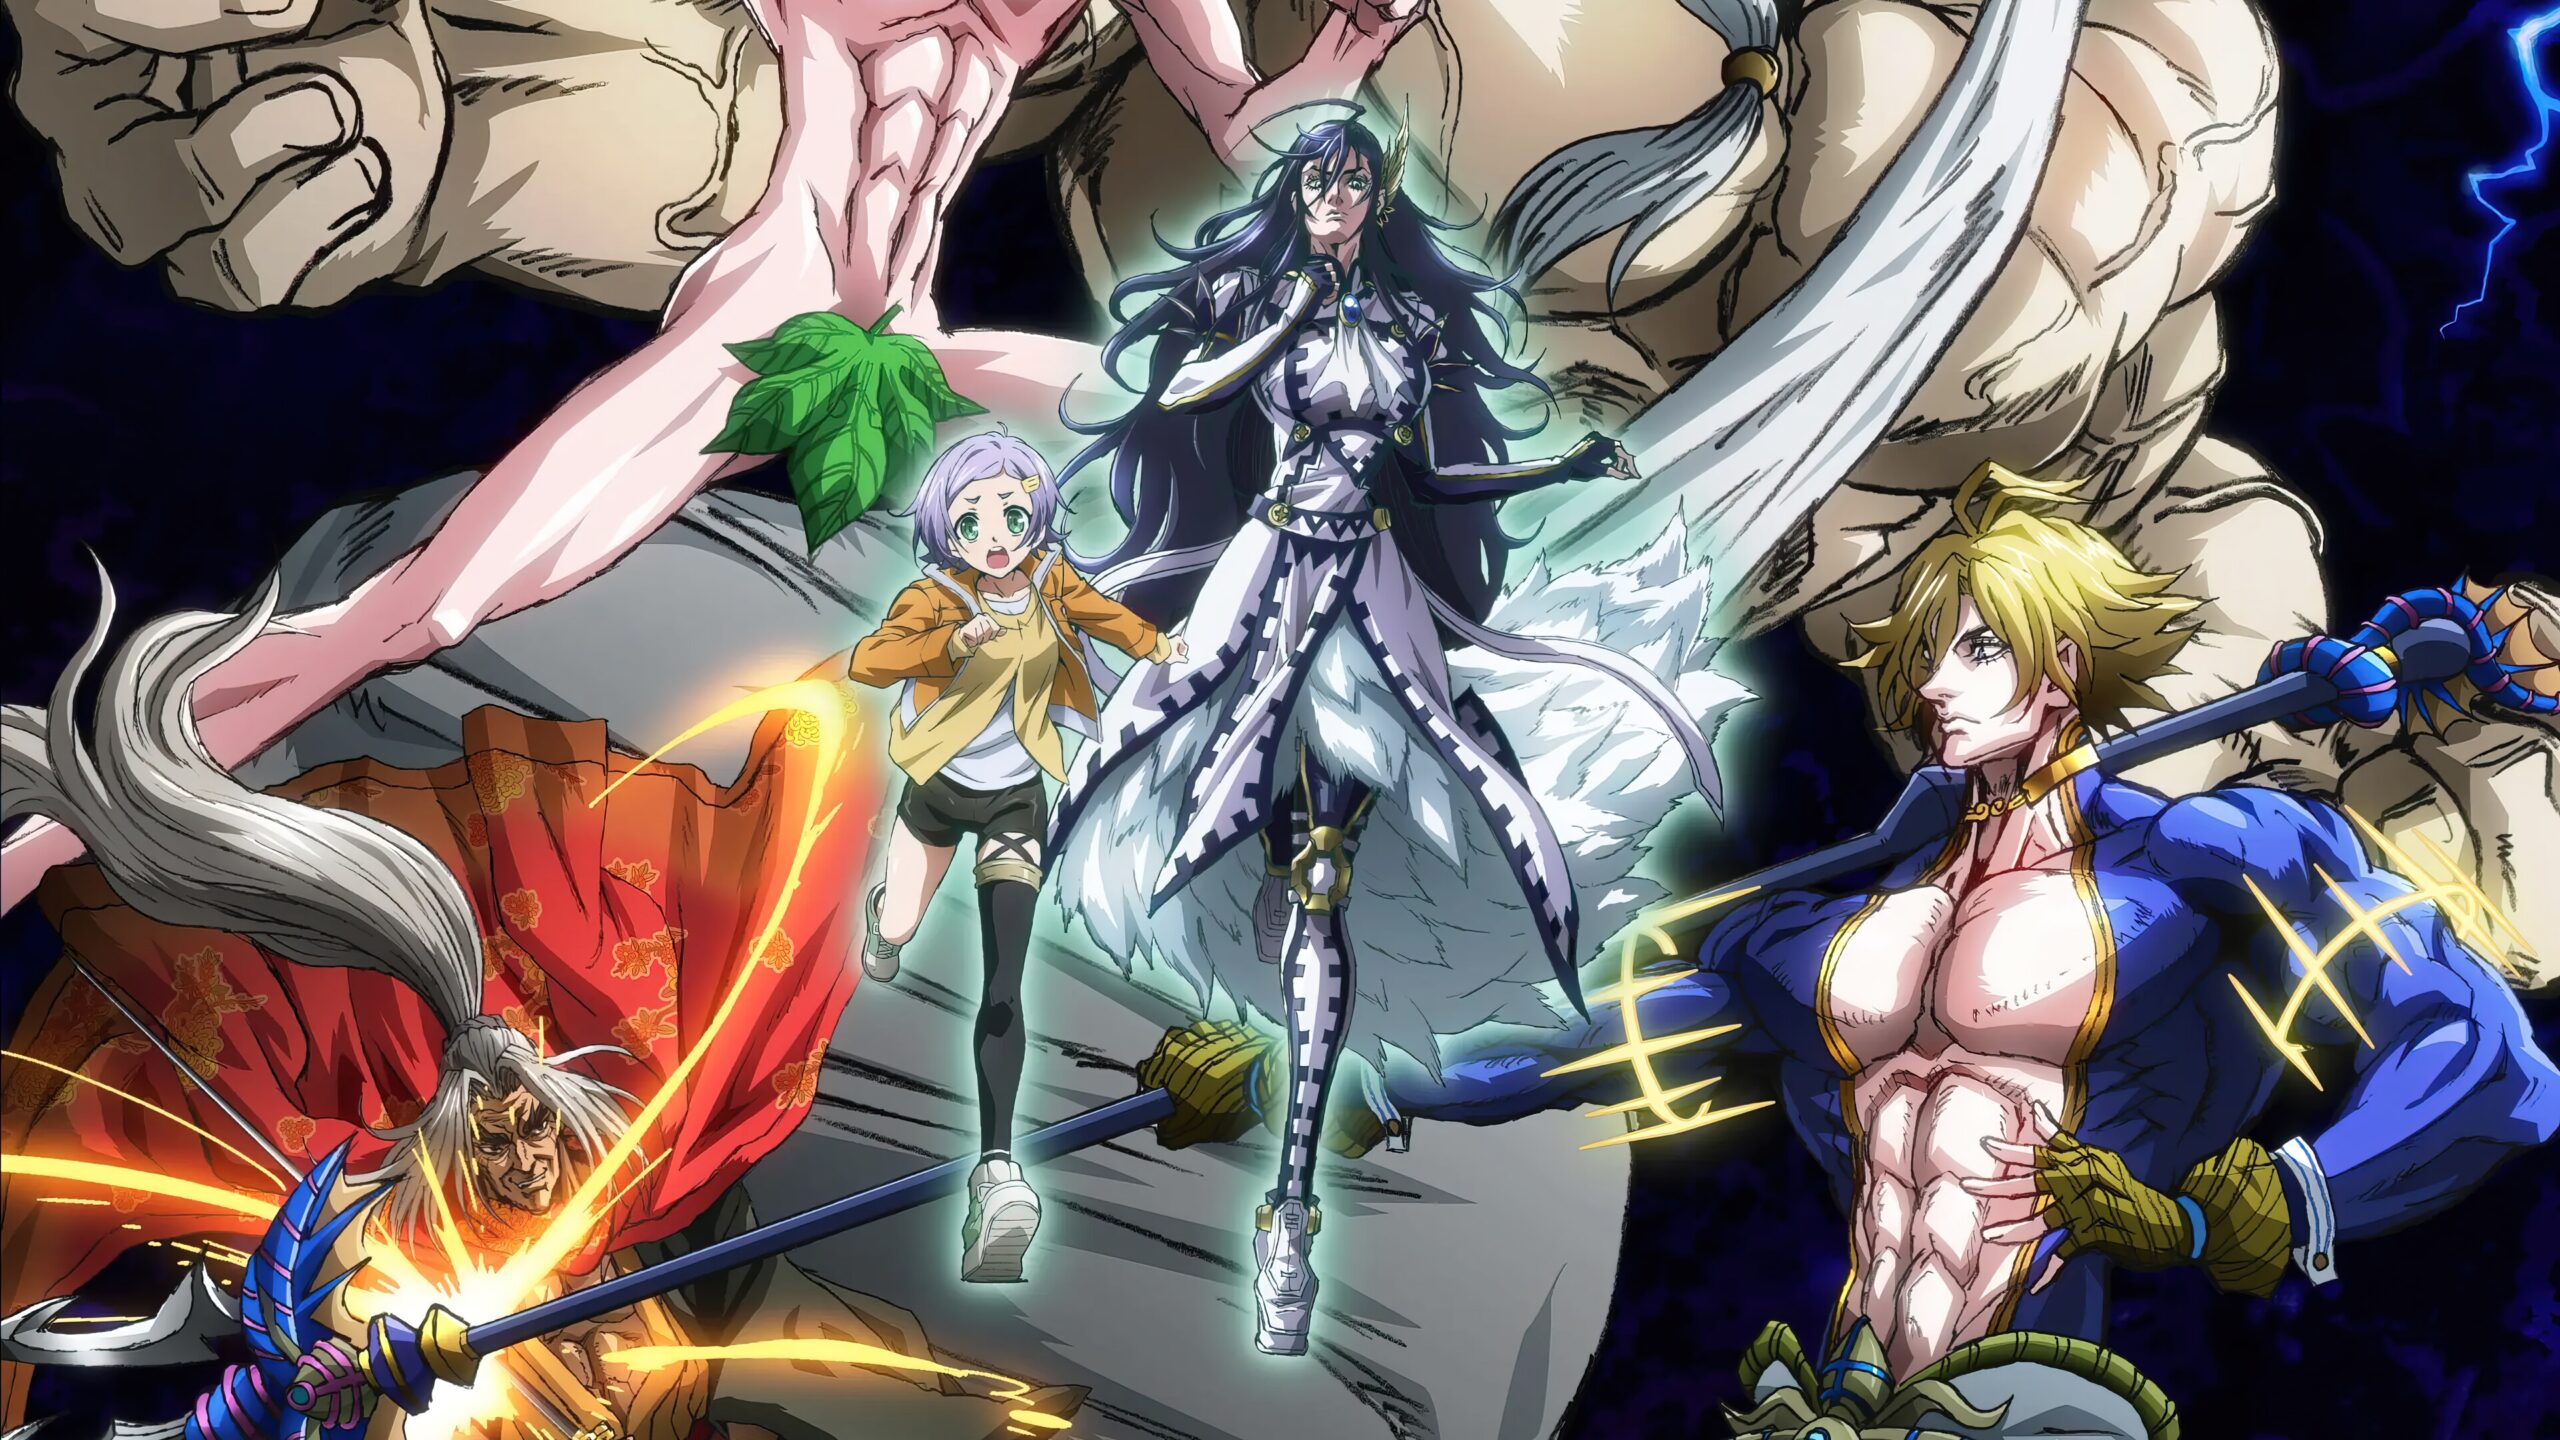 You are currently viewing Record of Ragnarok Anime Review: Is It Worth Watching?